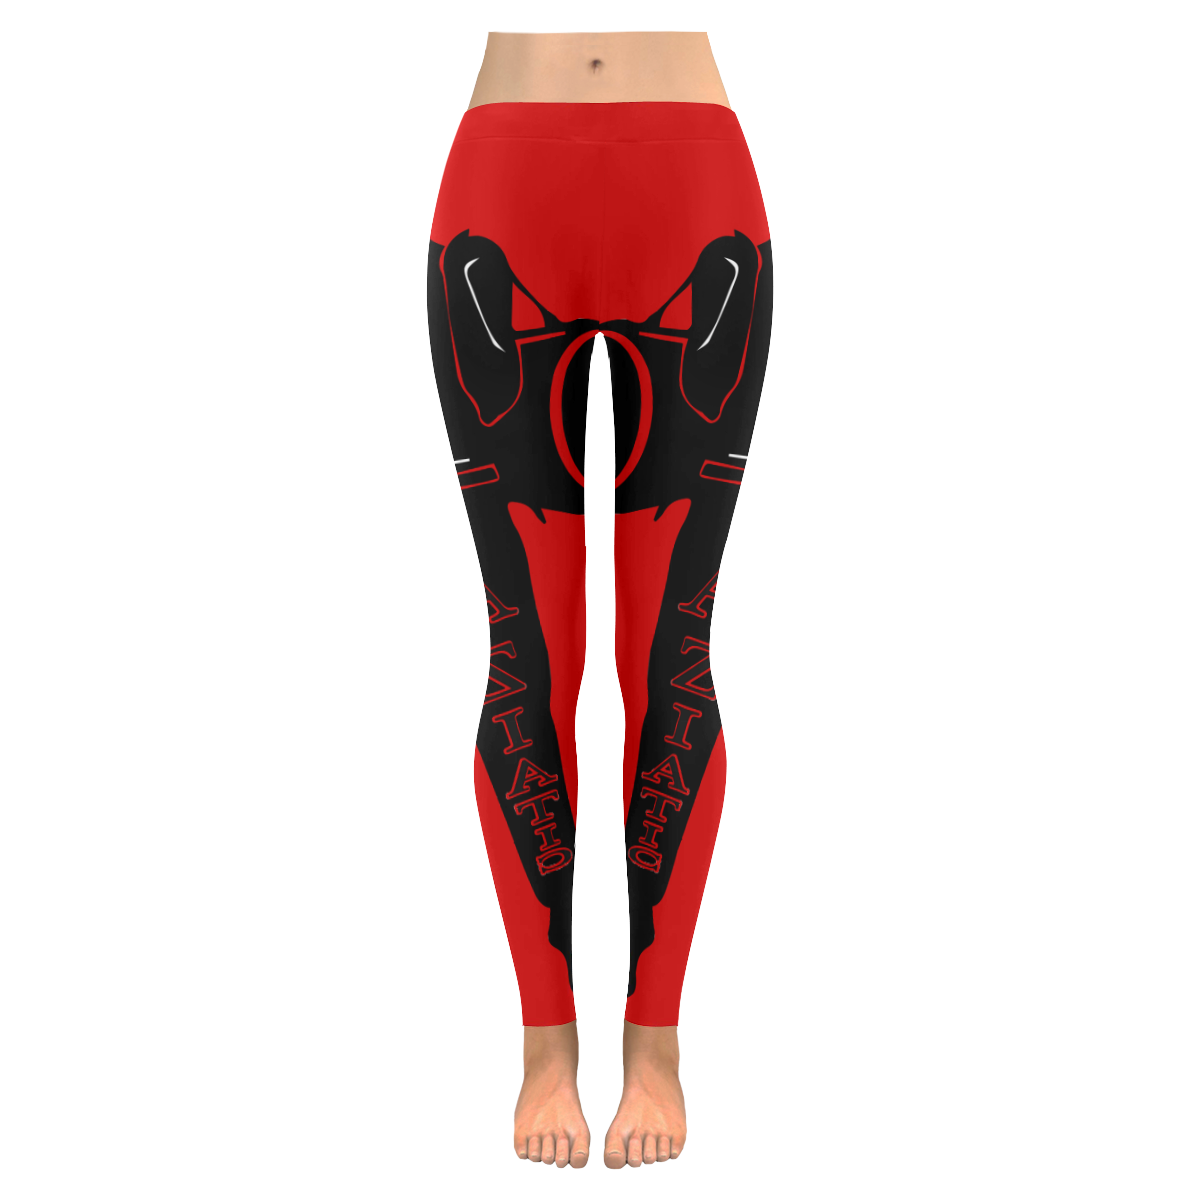 Aziatic Red & Black Low Rise Leggings (Invisible Stitch) (Model L05)